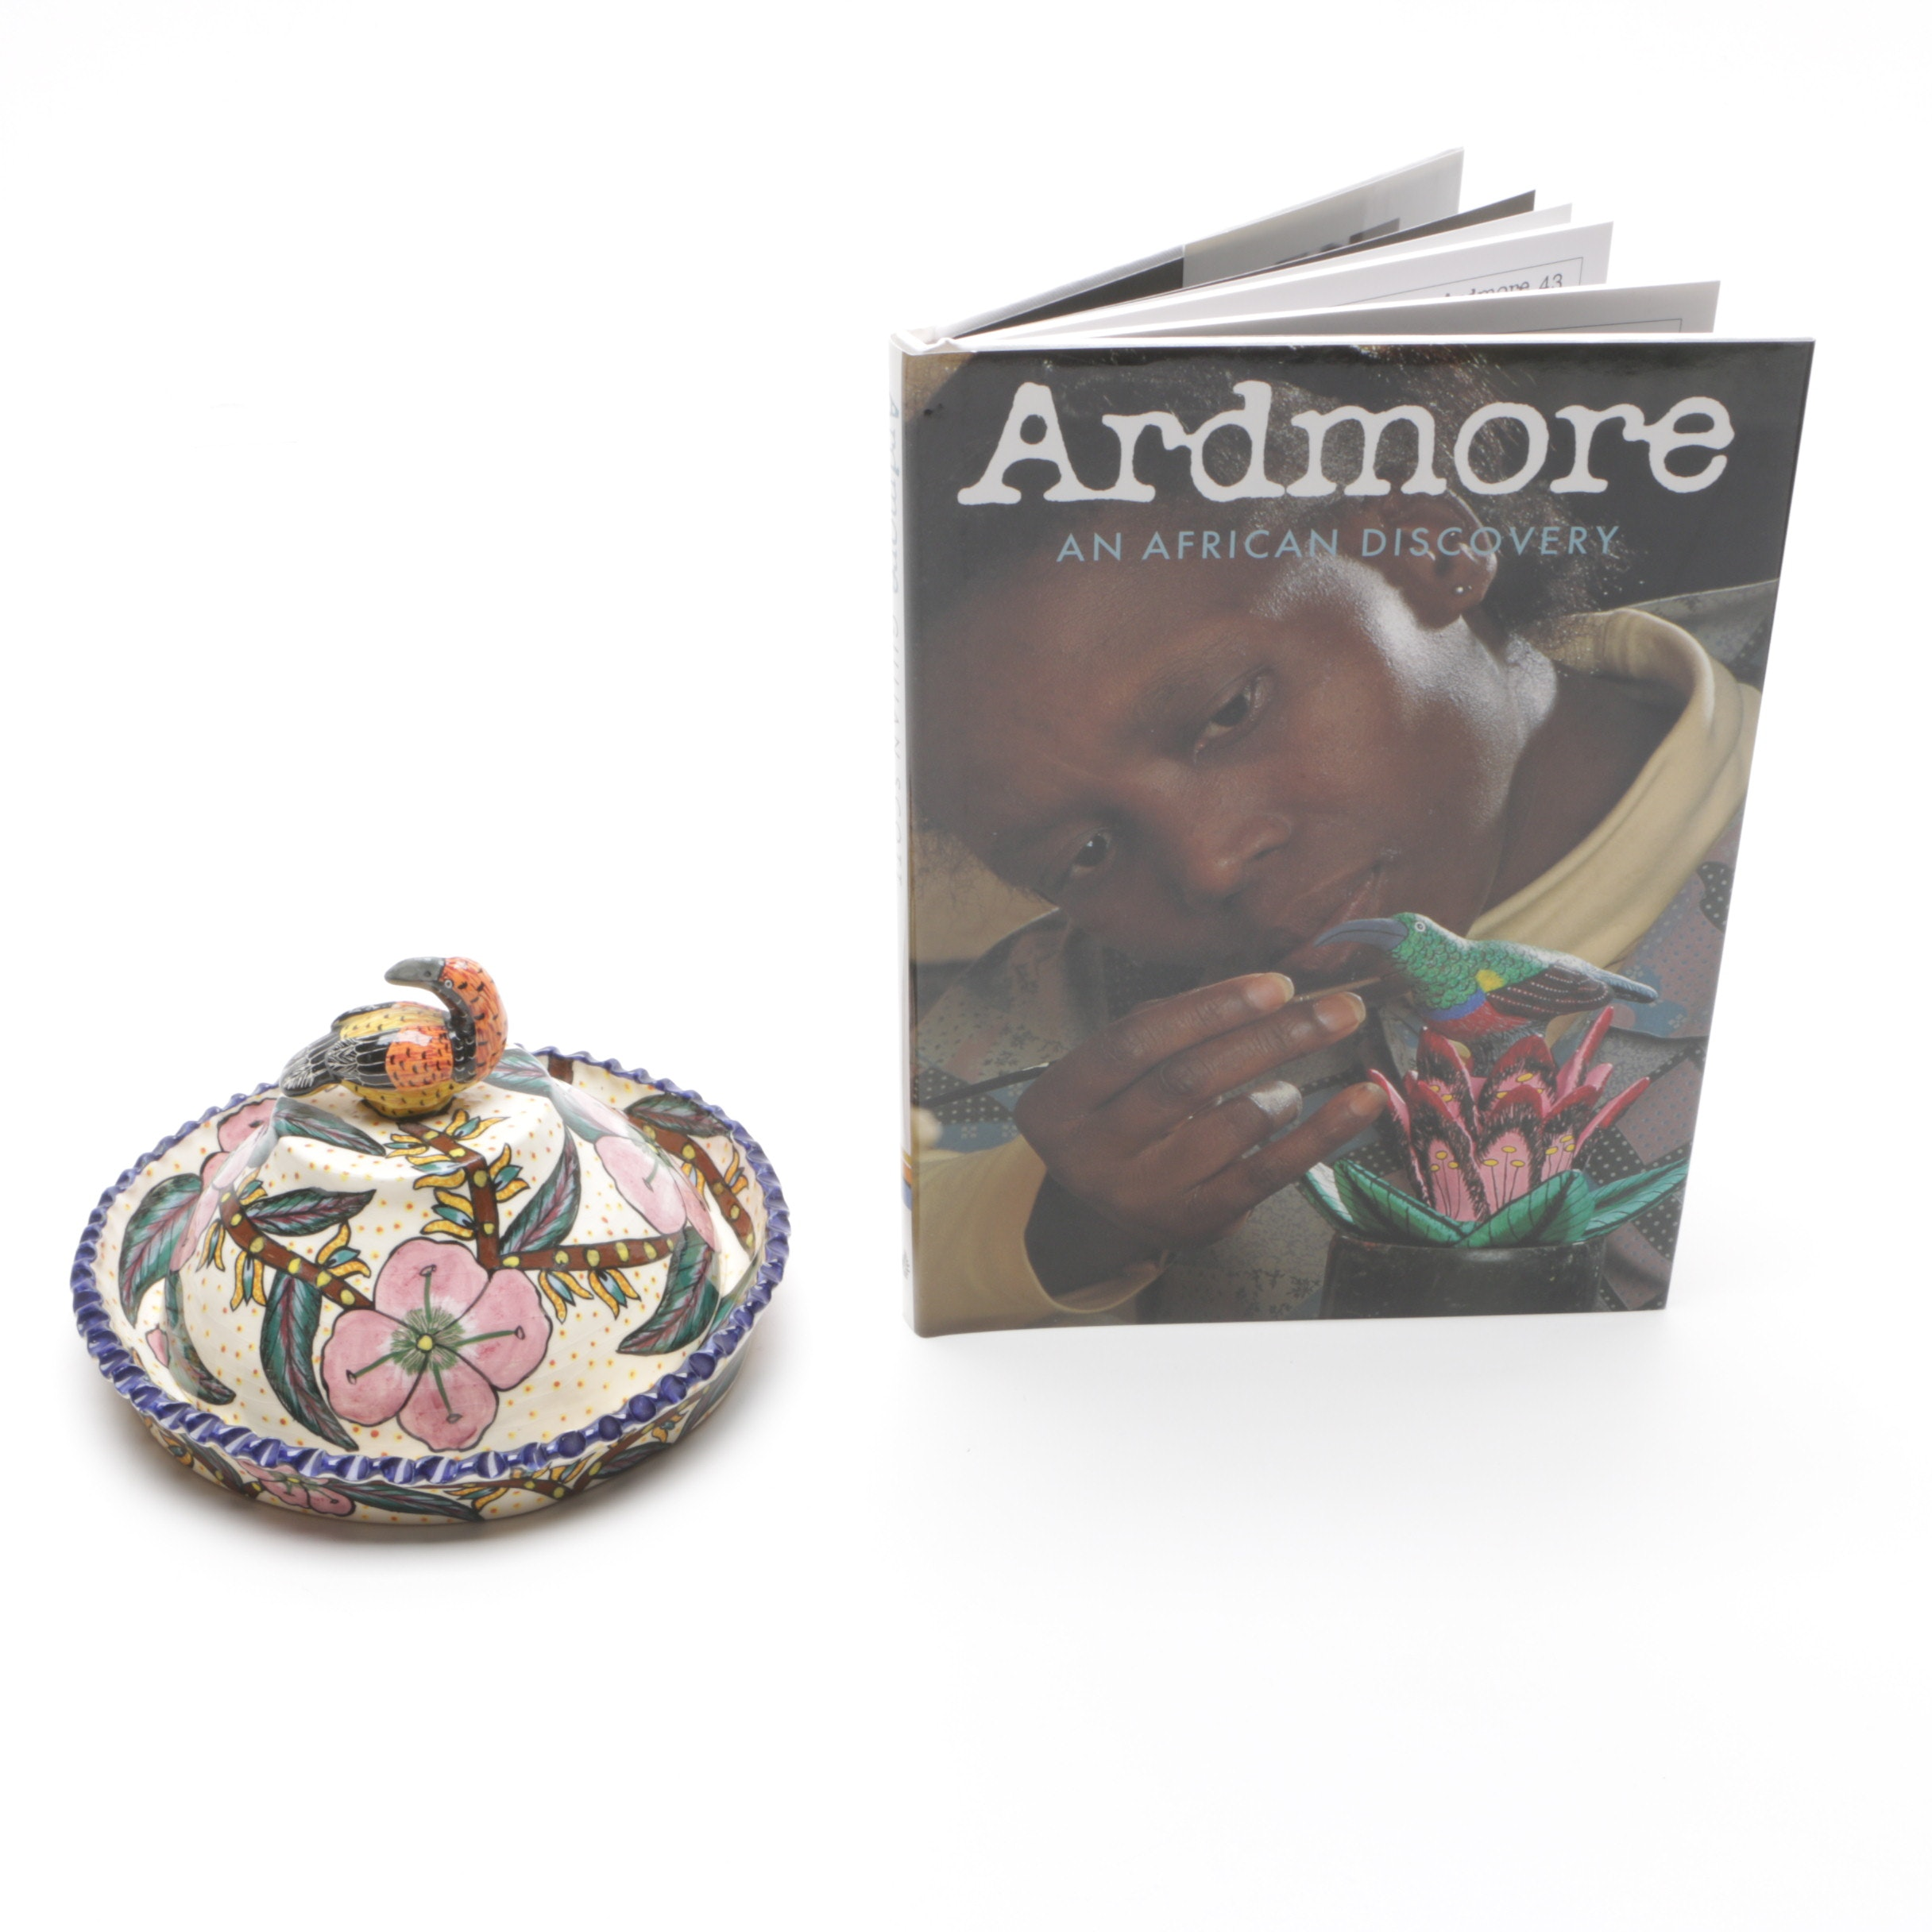 Ardmore Studio Hand Painted Ceramic Lidded Bowl and Book